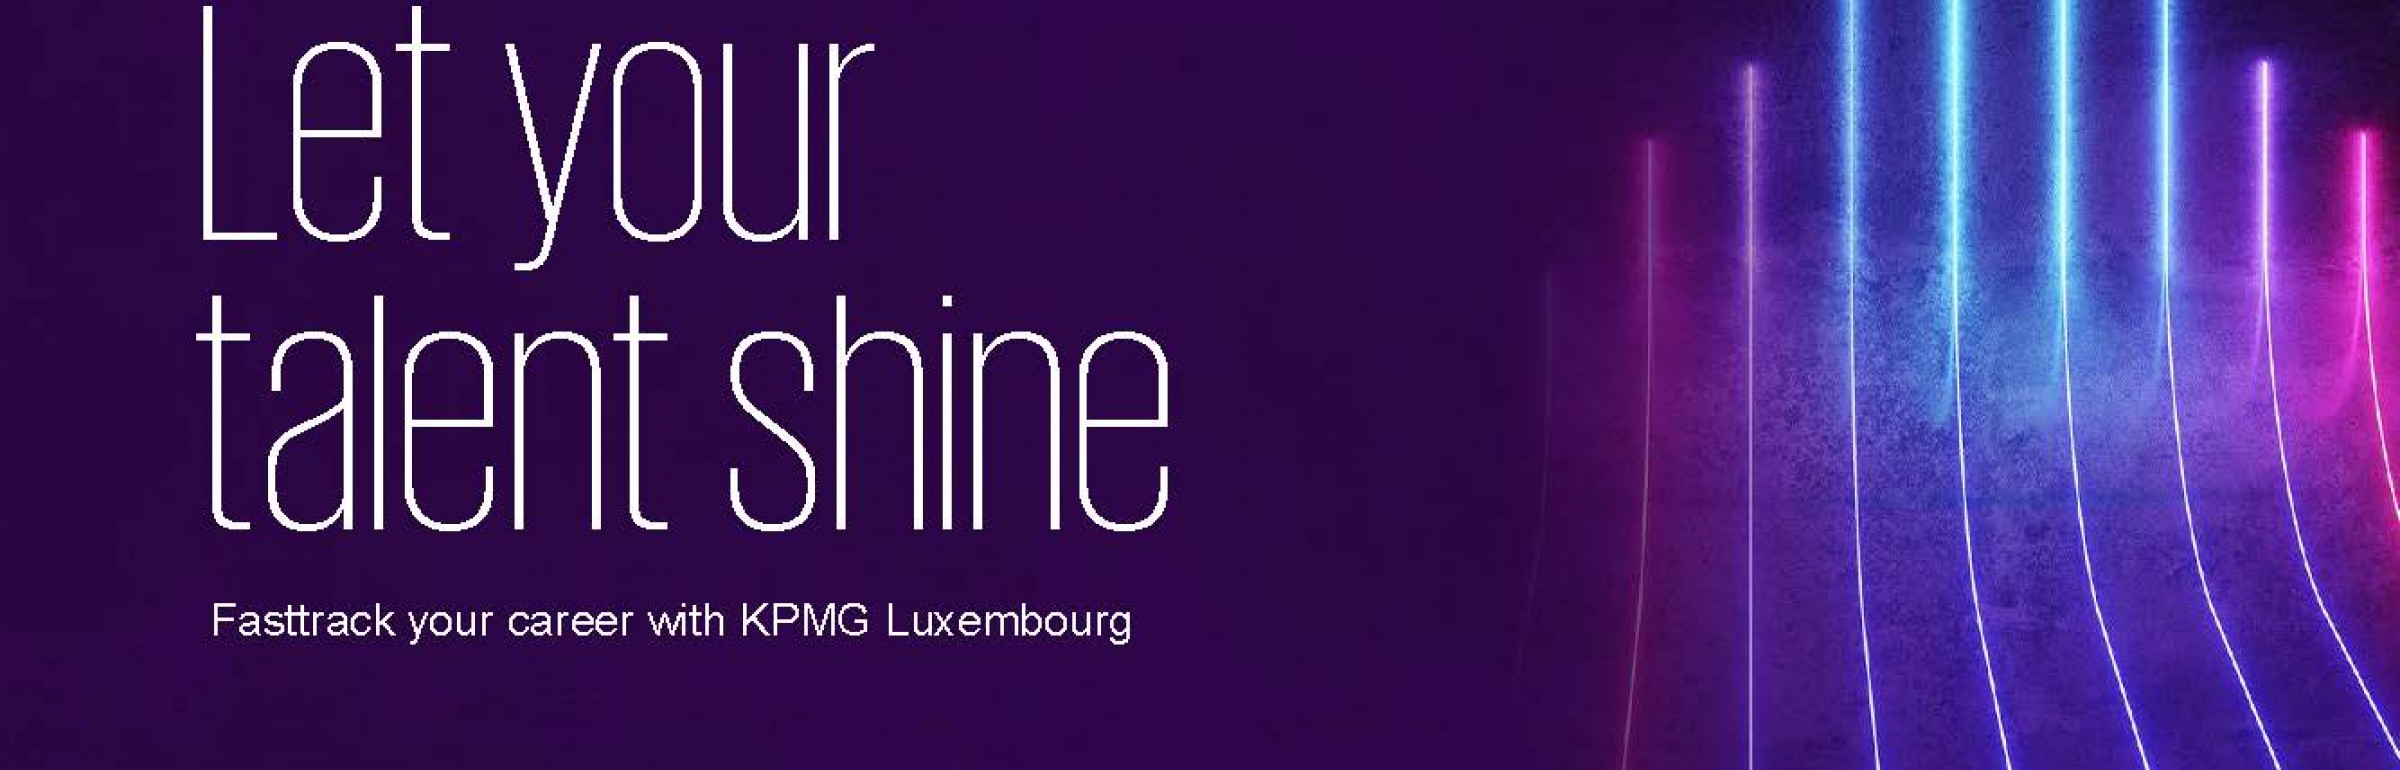 Banner KPMG Luxembourg